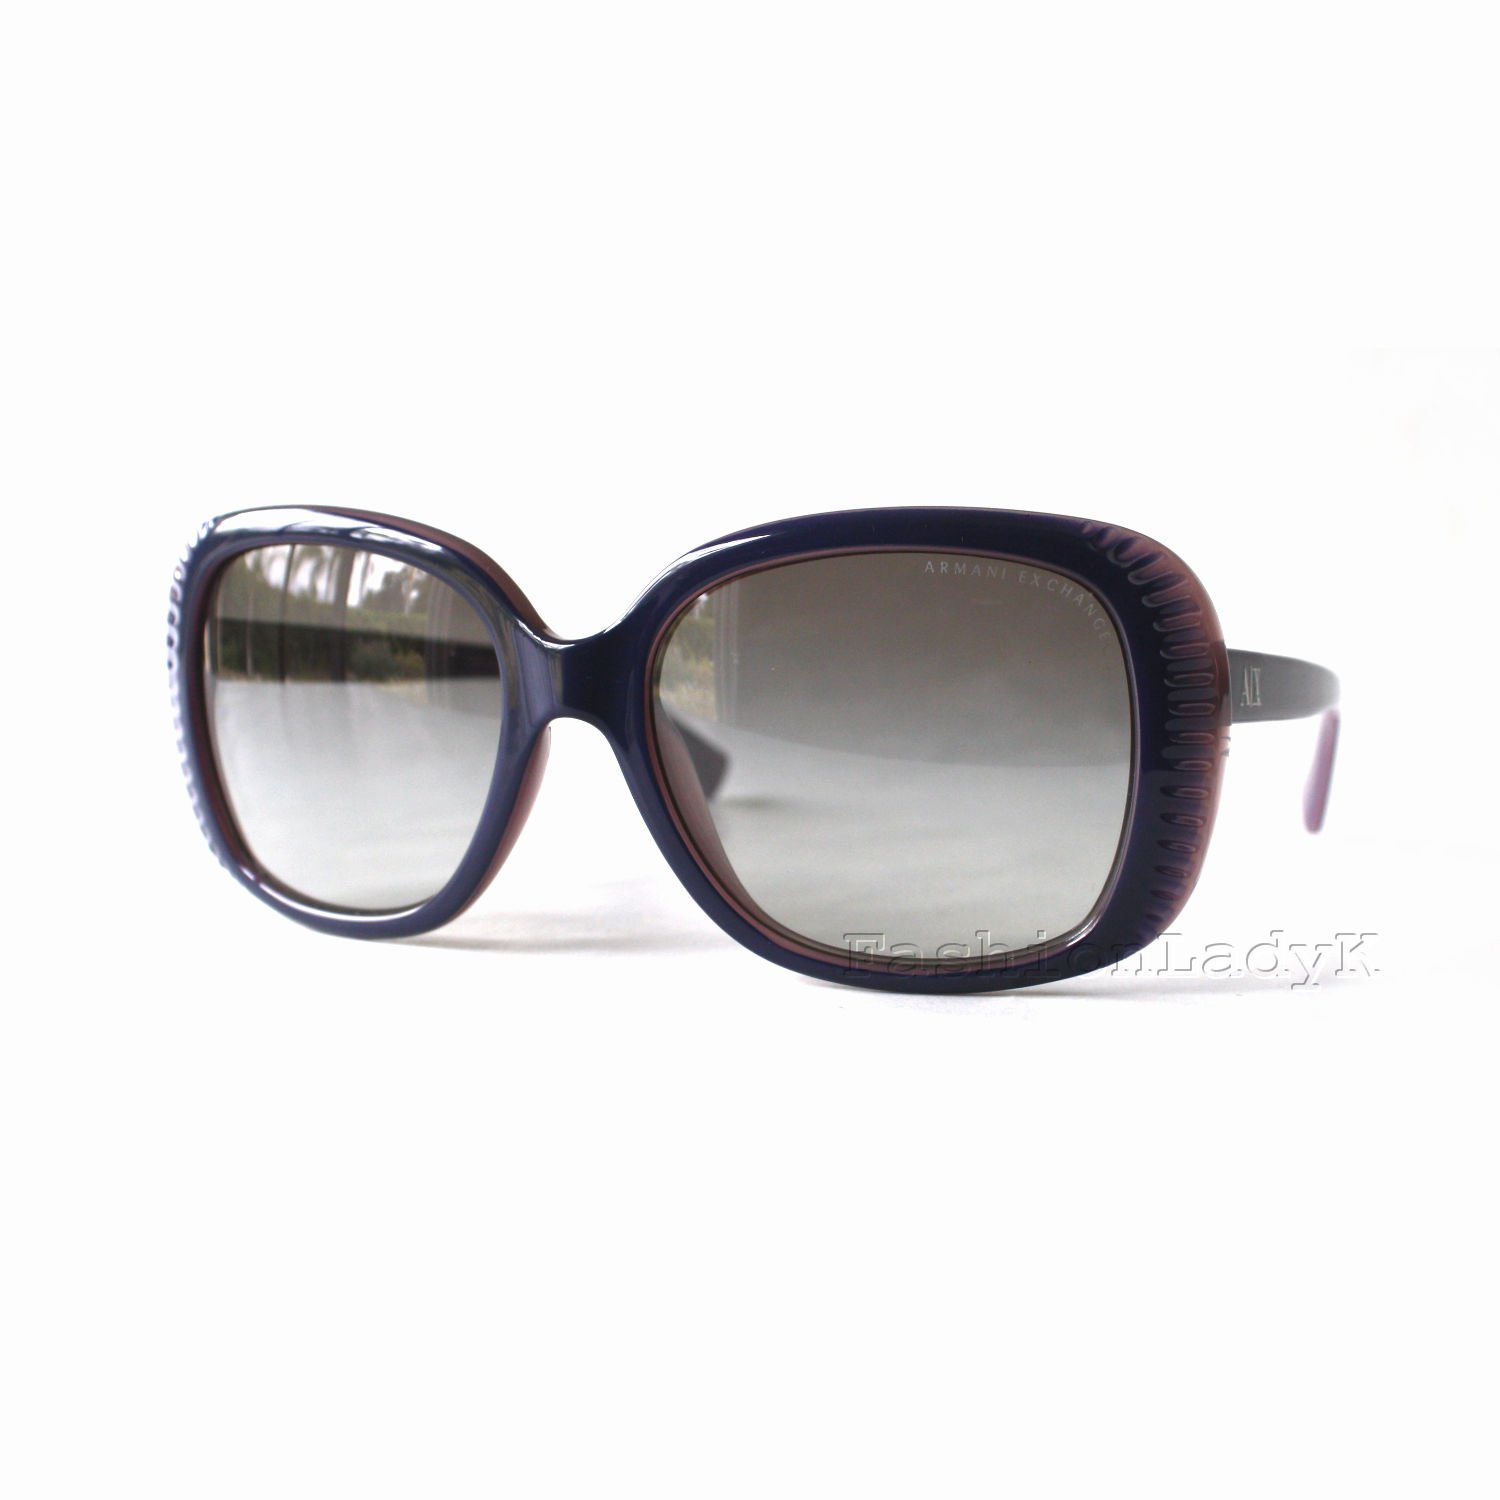 Armani Exchange Women Purple Frame Gray Lens Sunglasses AX4014 8061-11